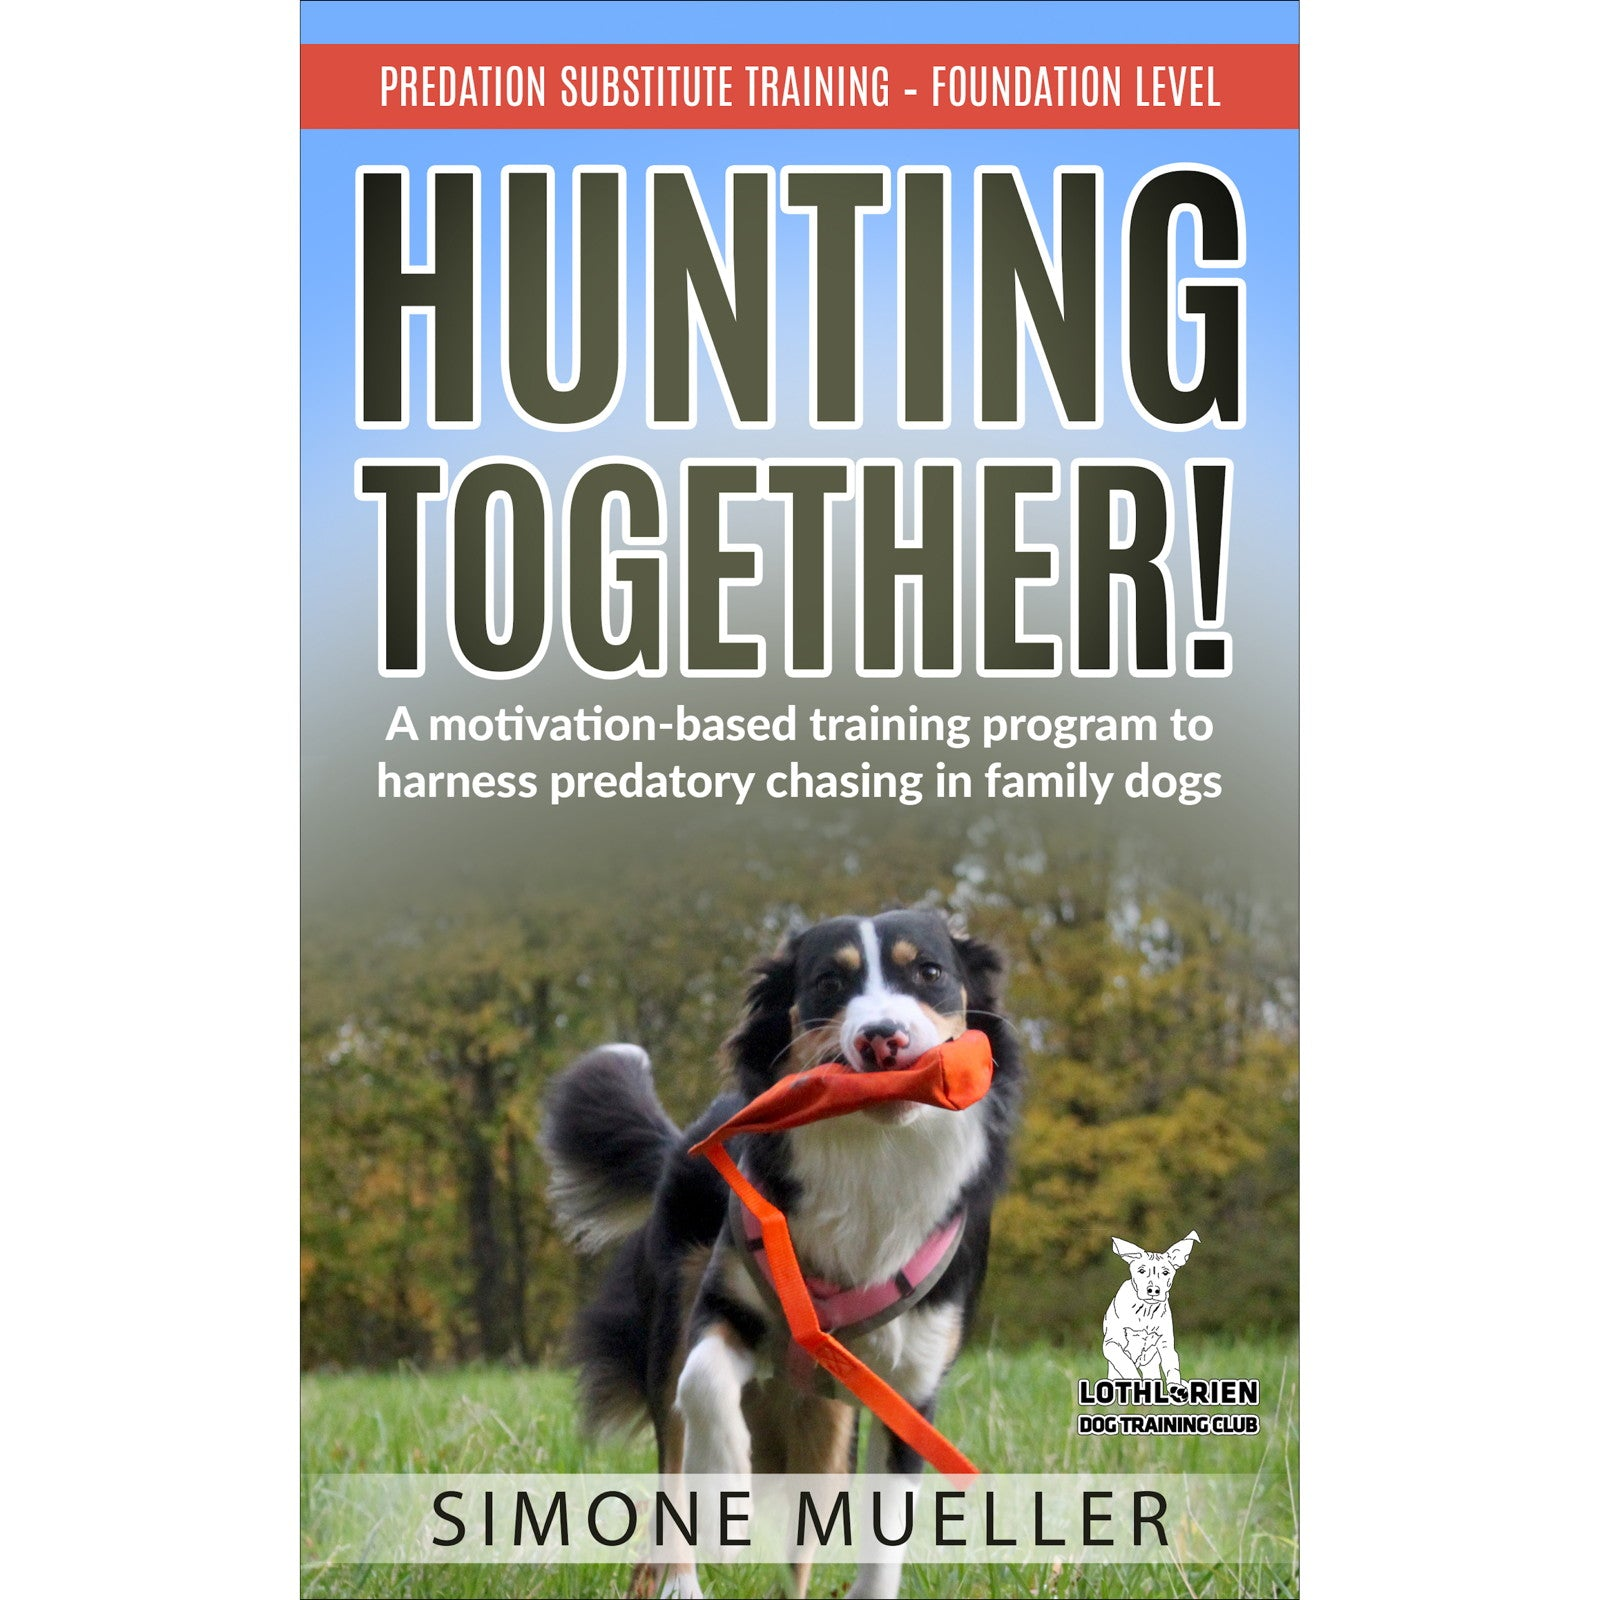 Hunting Together! Predation Substitute Training by Simone Mueller